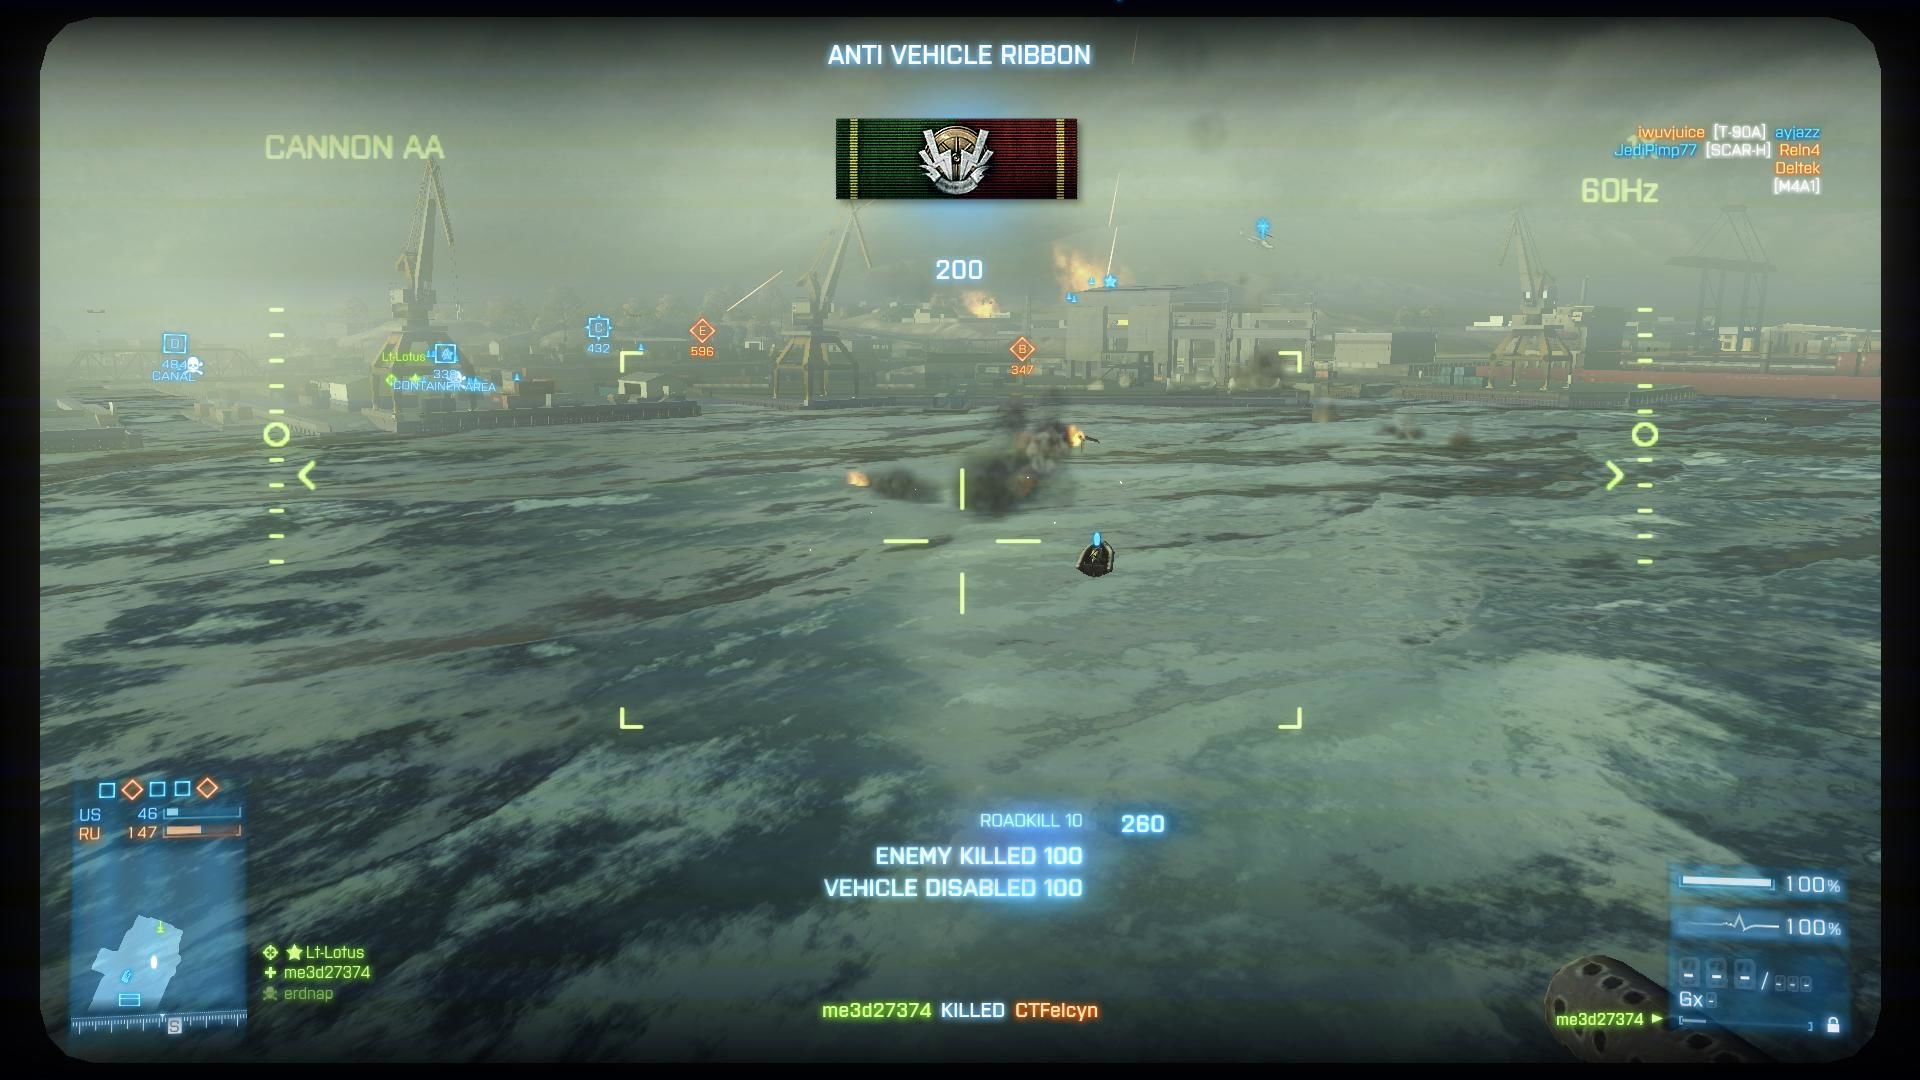 Battlefield 3 Windows Noshahr Canals - Using the AA canon on the ship shooting down choppers and jets.  Gaining a ribbon for my latest kill.